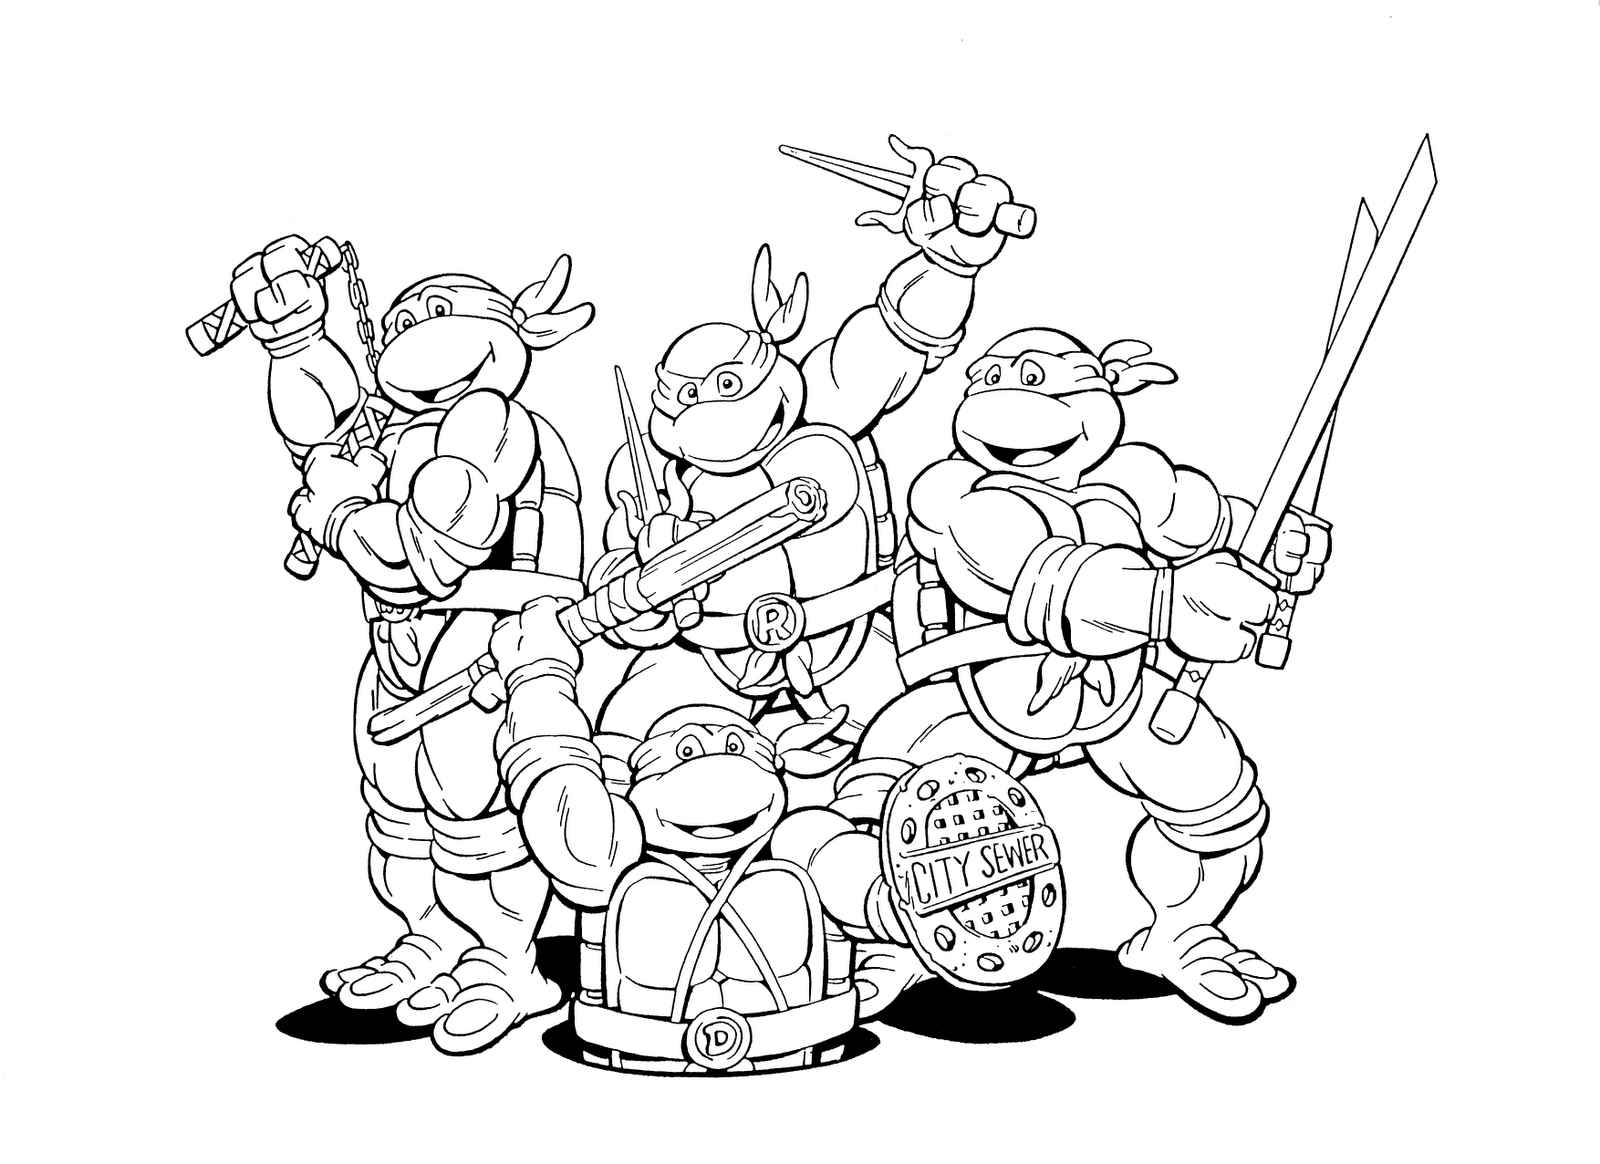 teenage-mutant-ninja-turtles-coloring-page-0013-q1